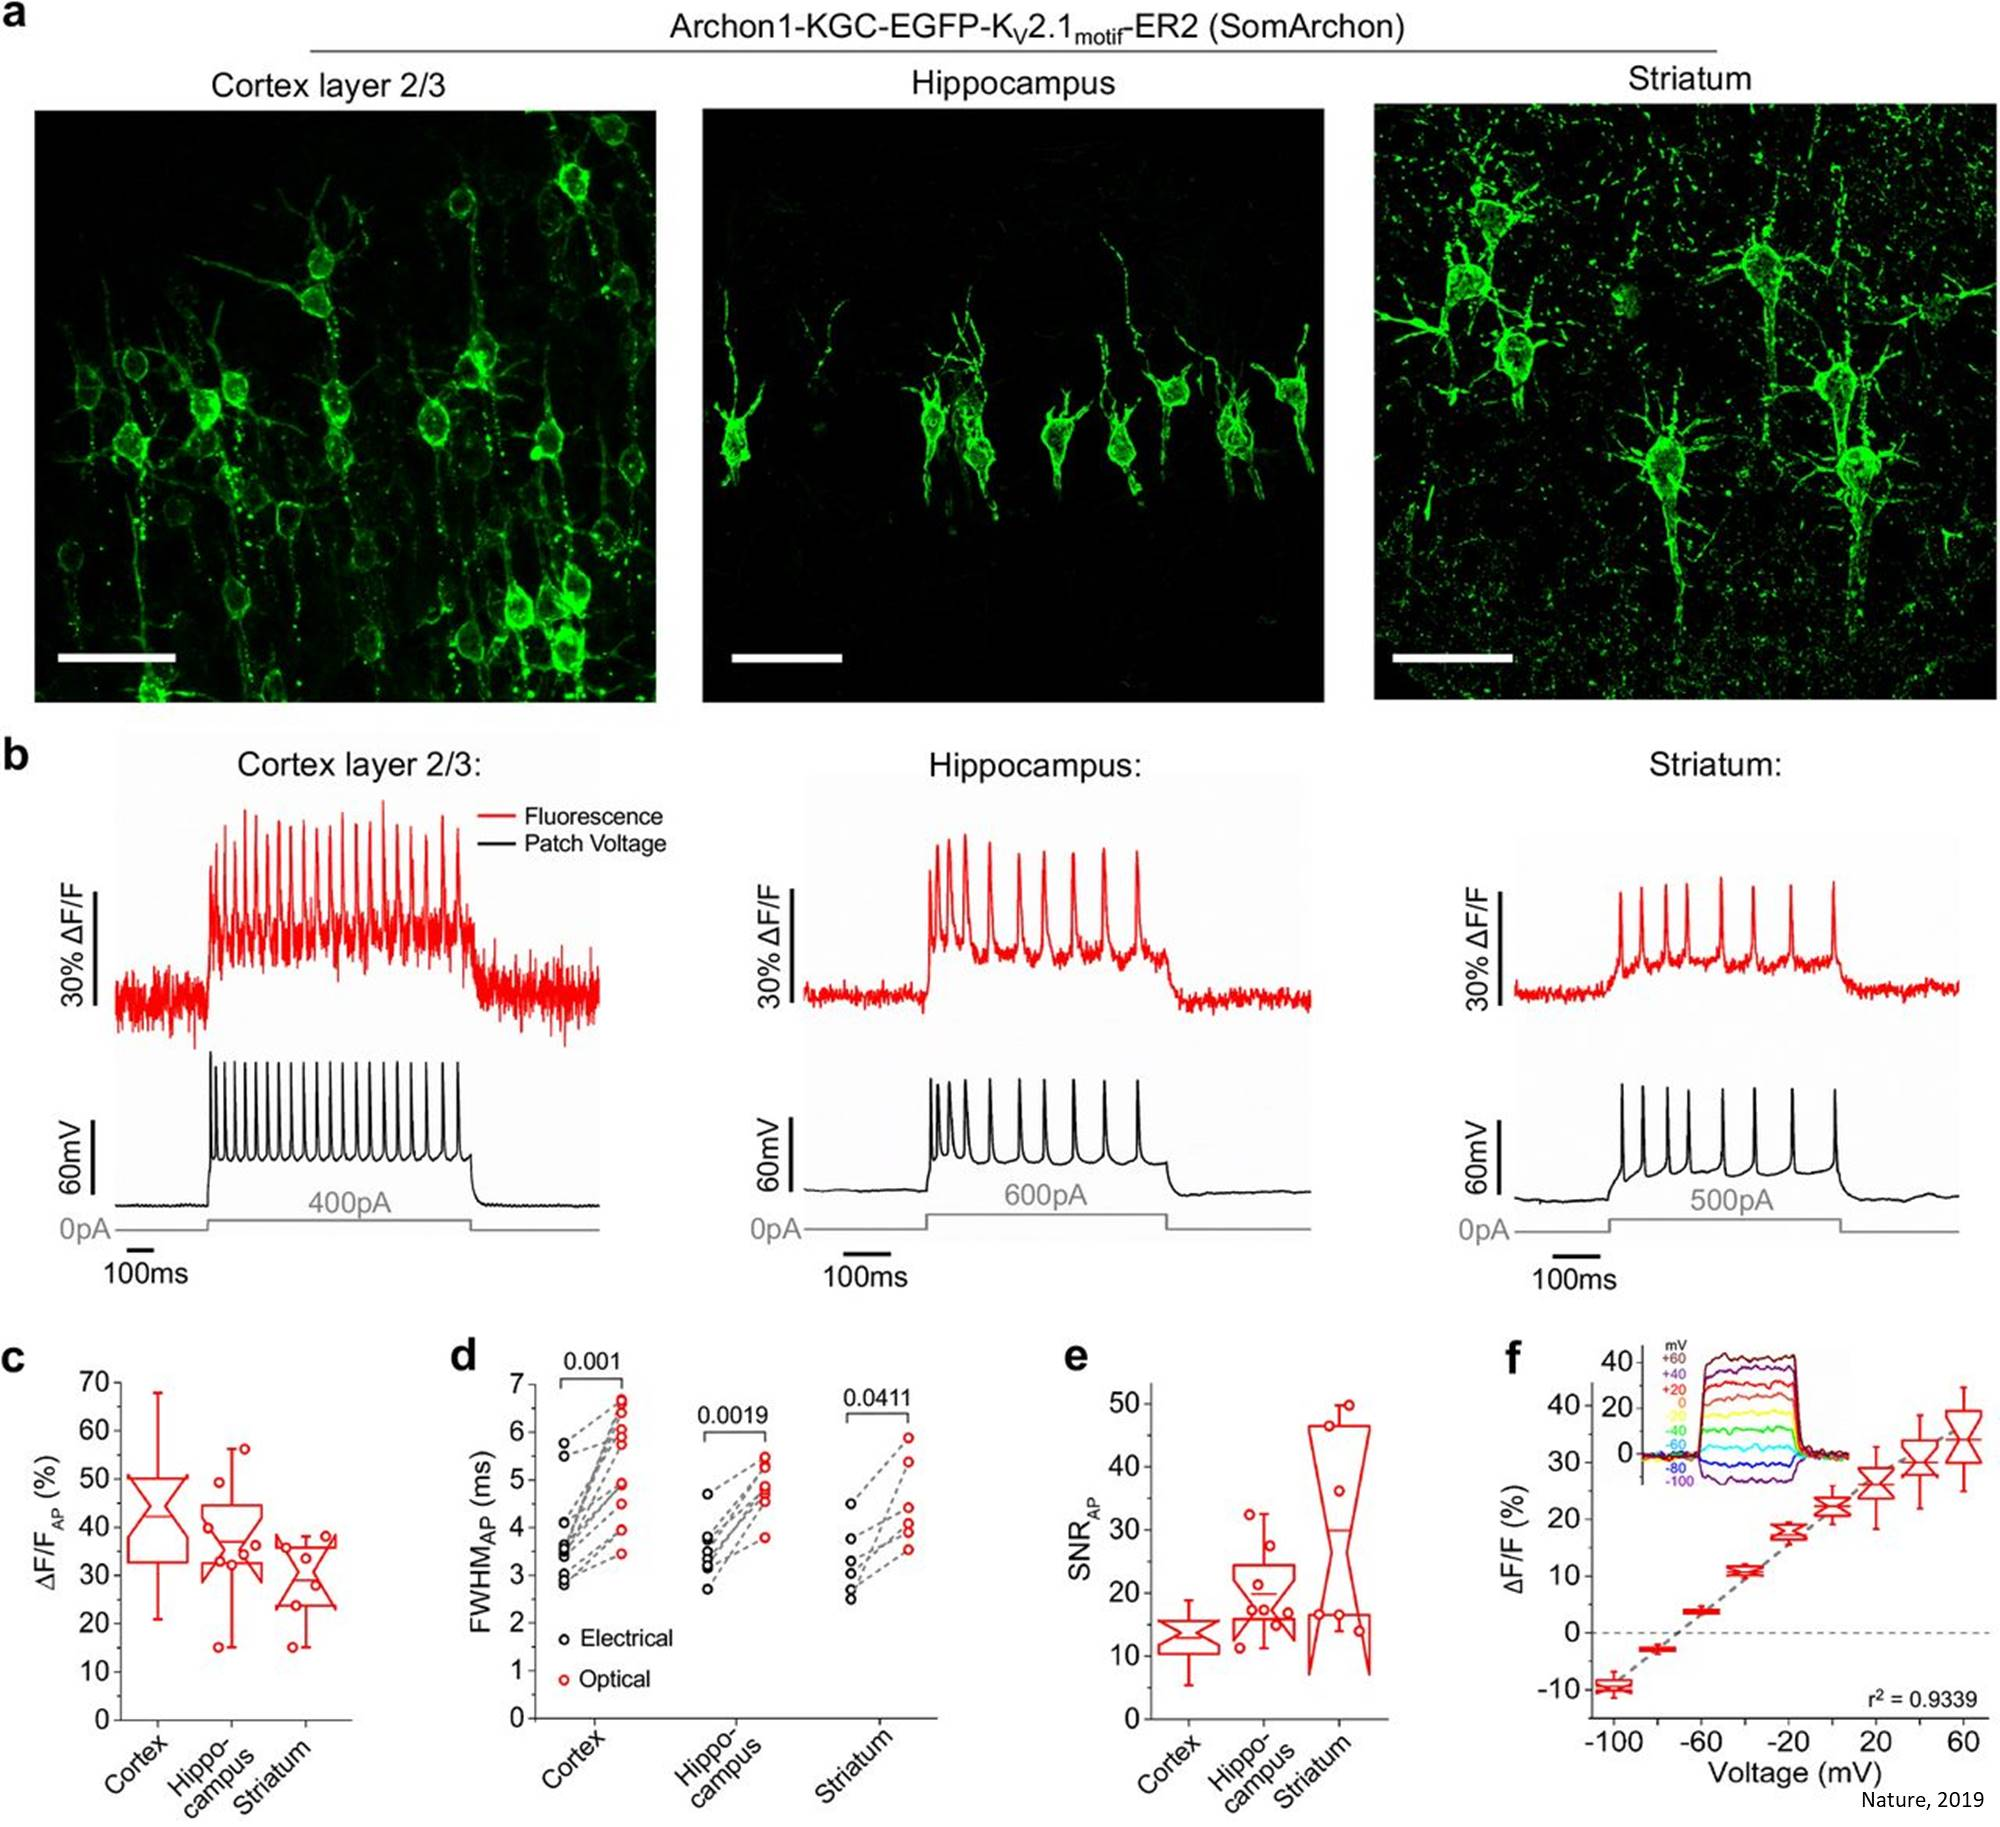 Visualizing the circuits and neuronal activity in animals using fluorescent probes